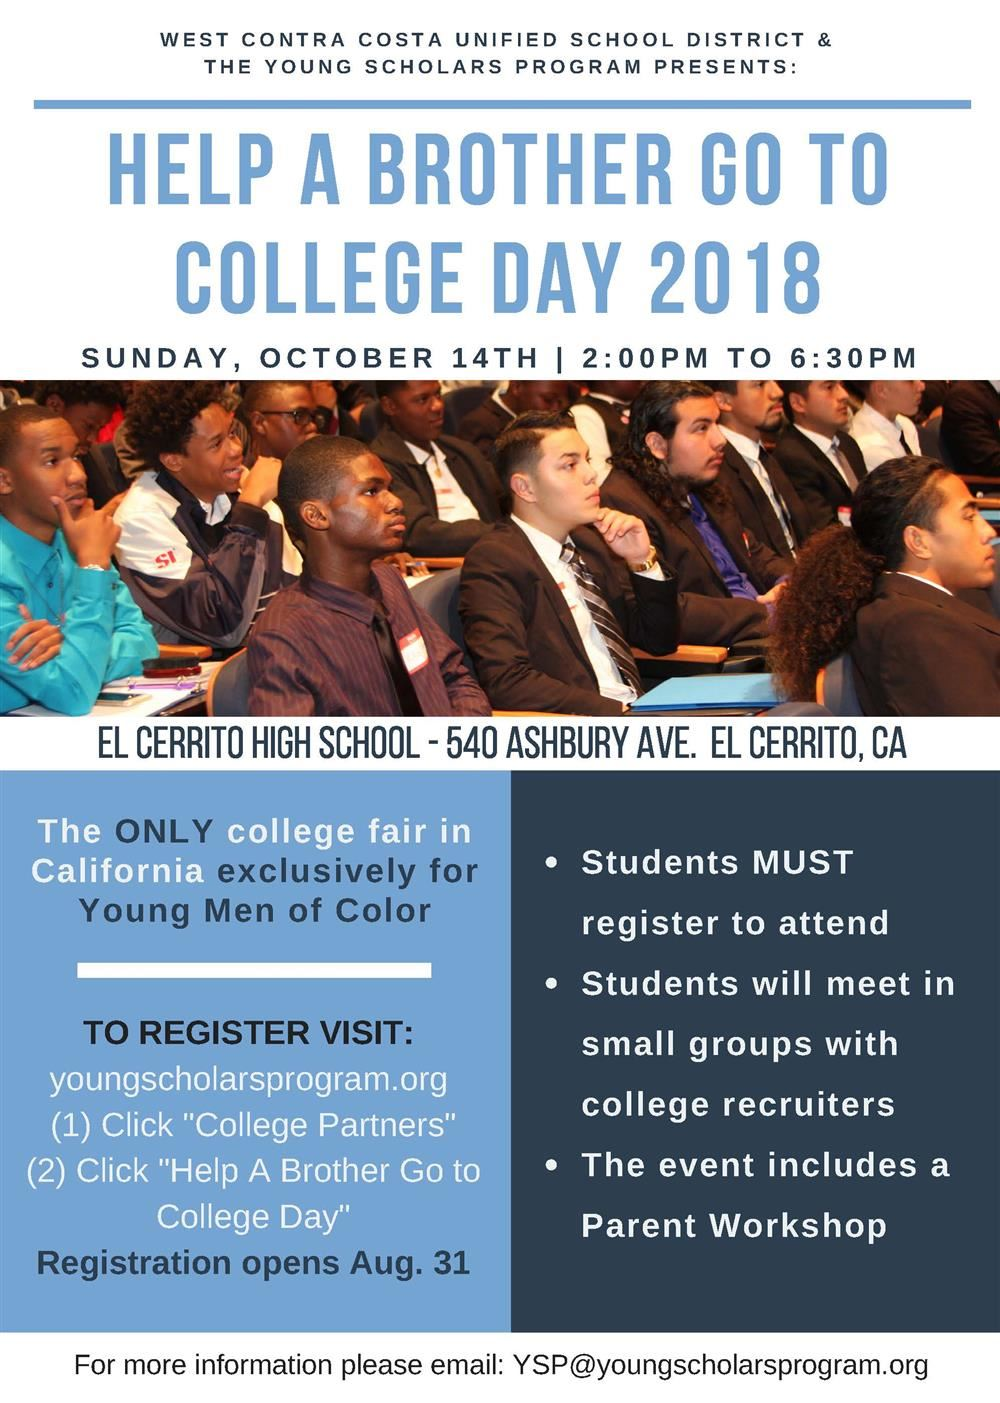 Upcoming College Fair Aims to Help Young Men of Color in WCCUSD